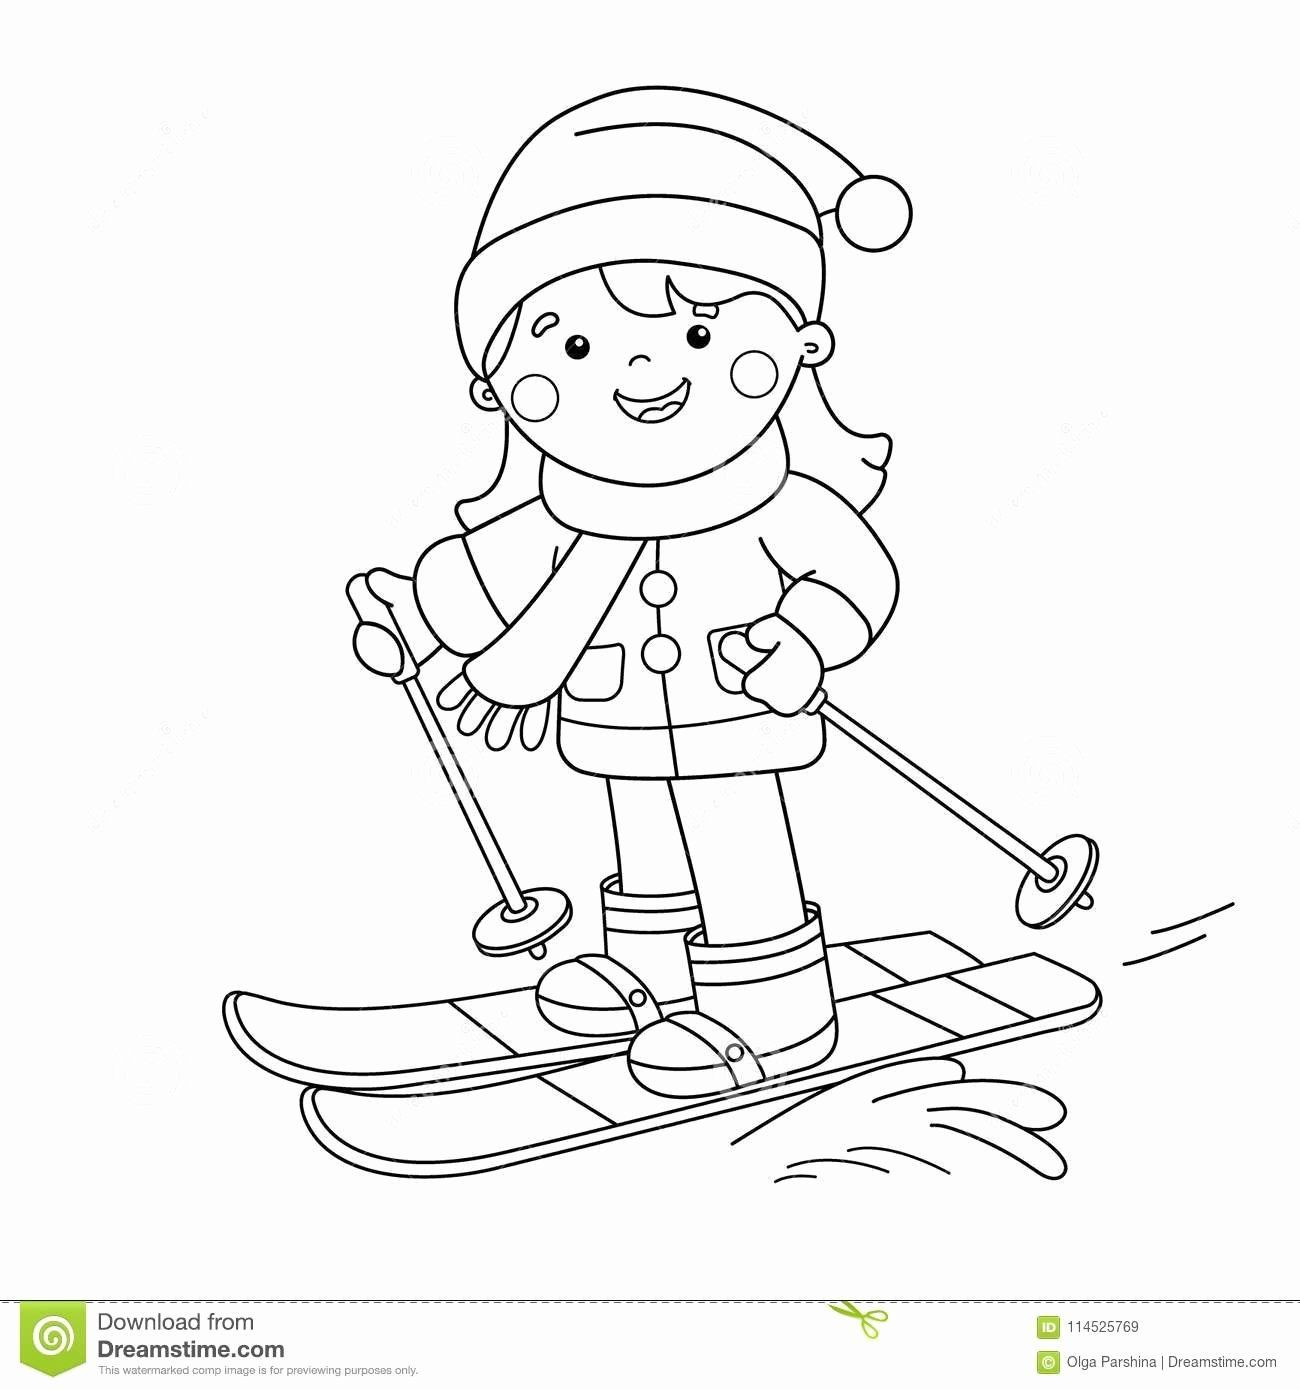 Free Sport Coloring Sheets Elegant Coloring Page Outline Cartoon Girl Skiing Winter Sports Coloring Pages Coloring Sheets Coloring Books